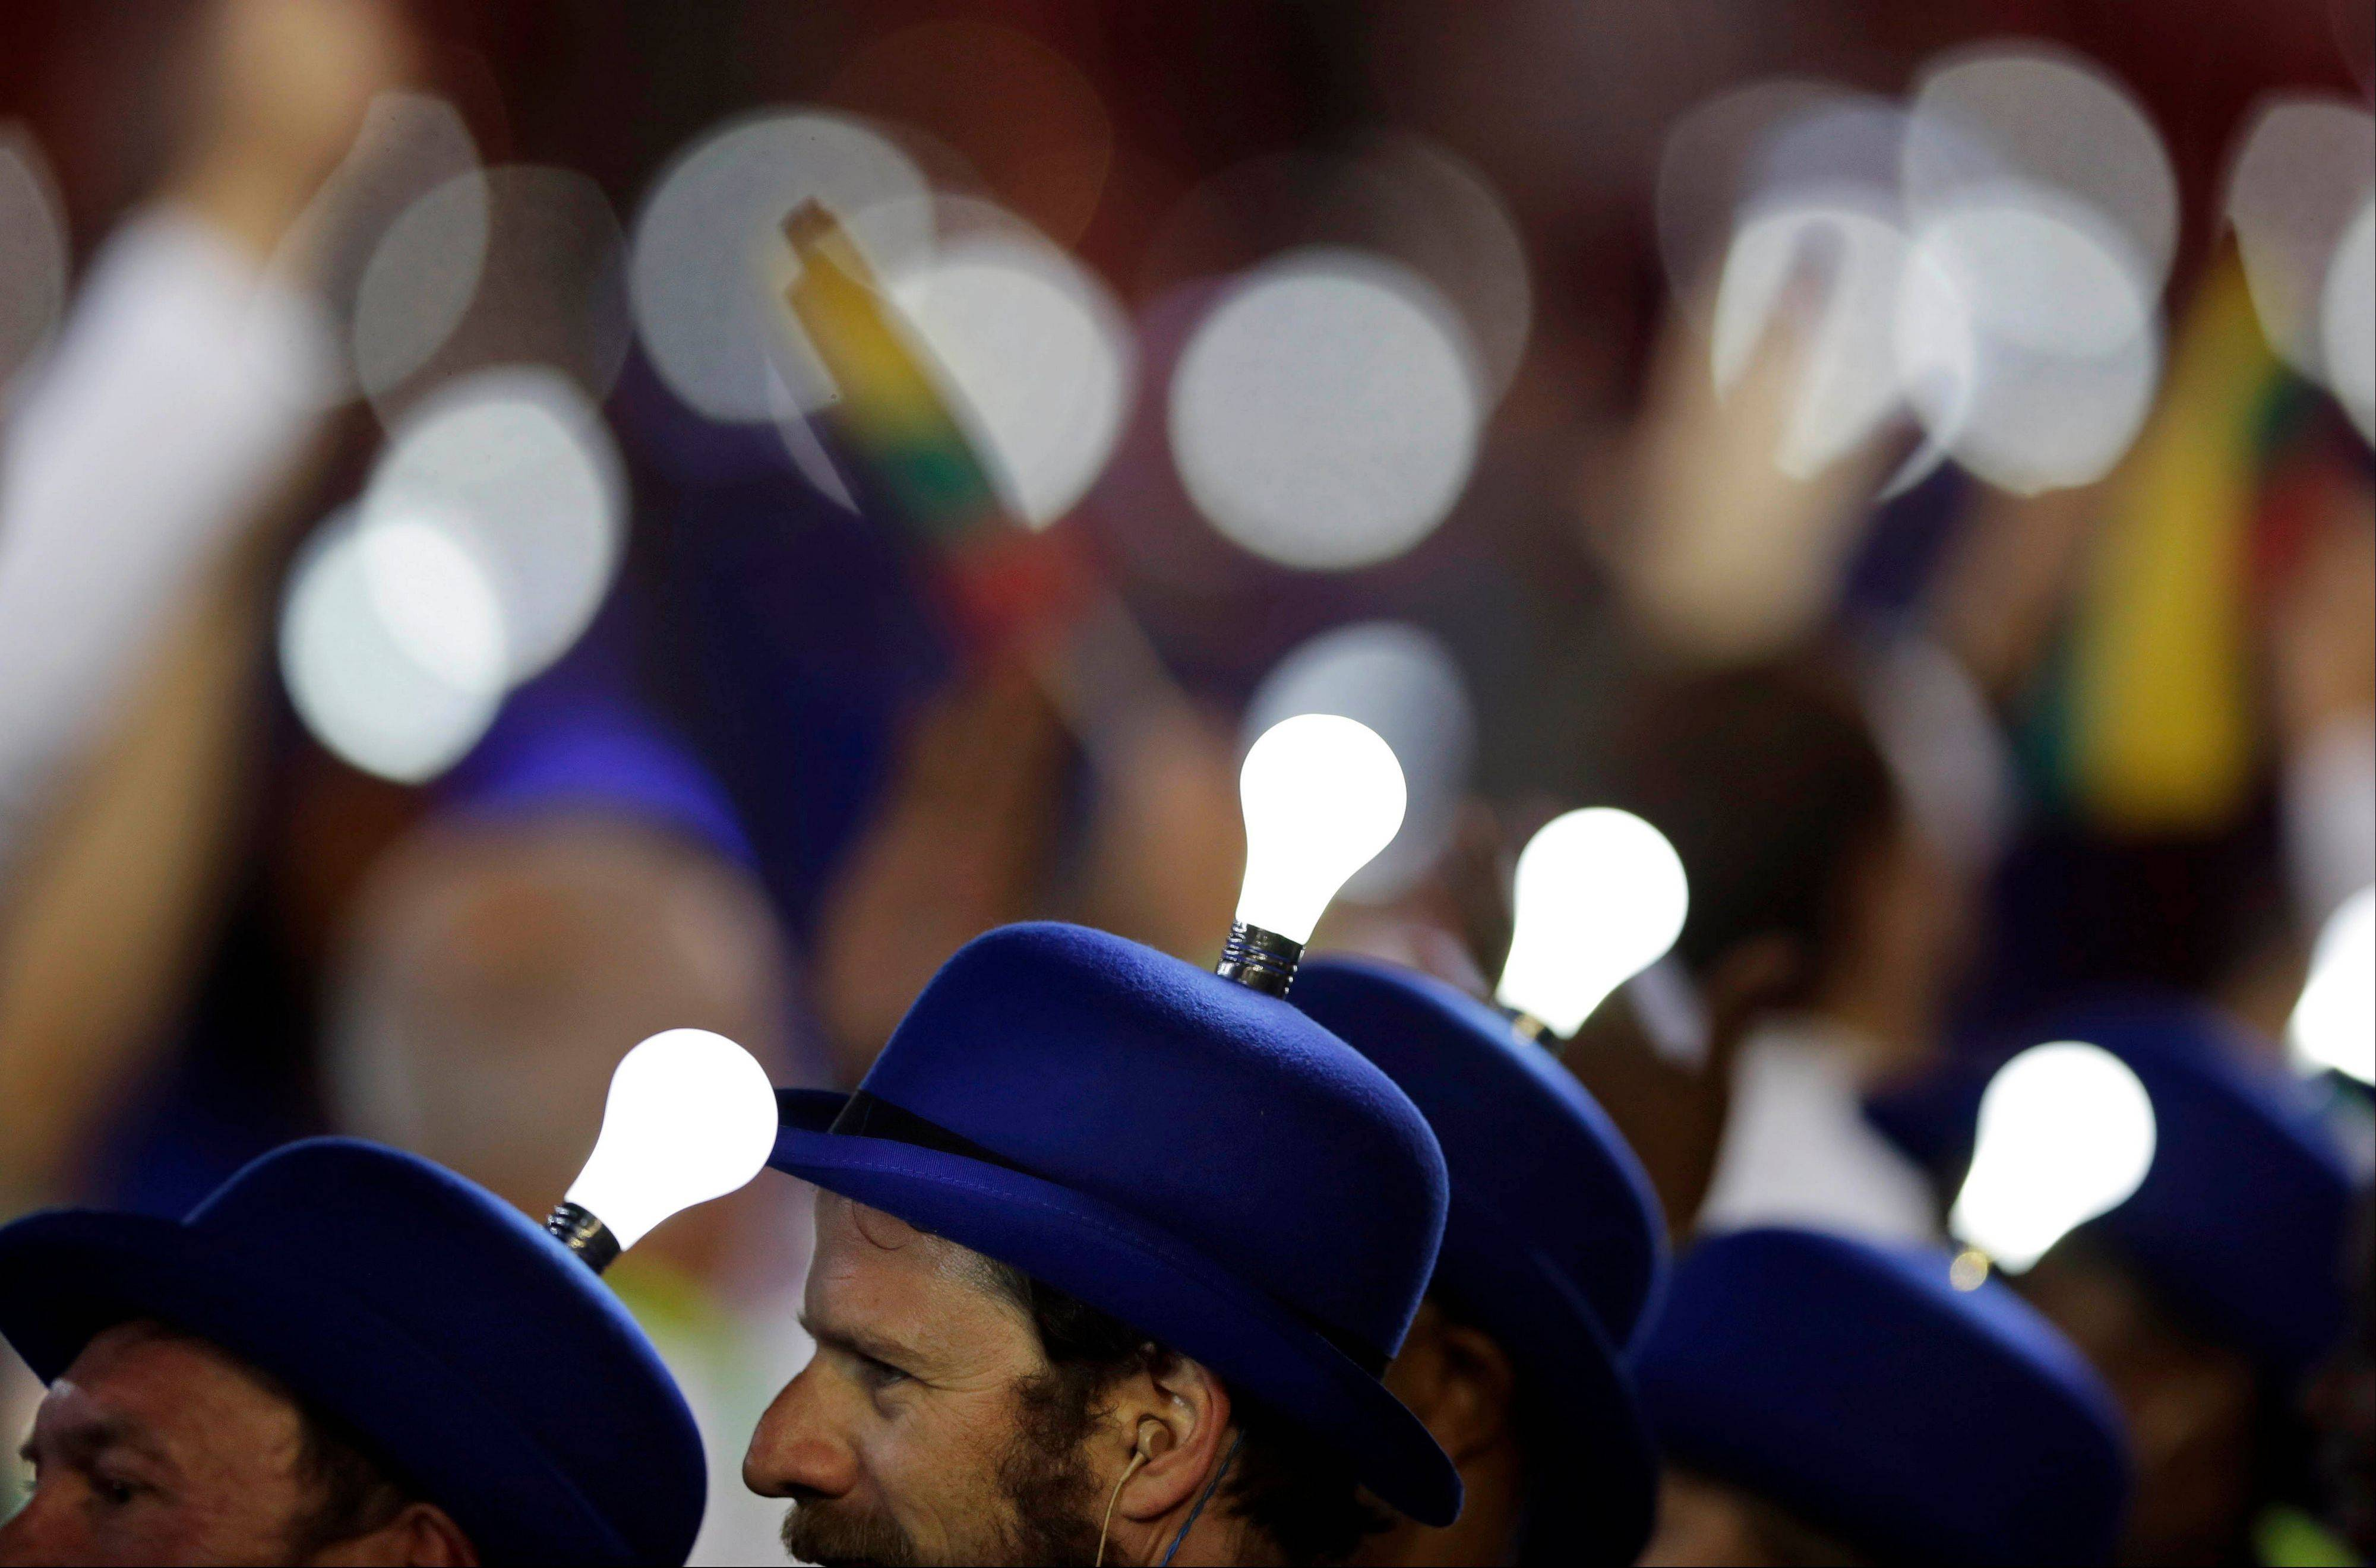 Light bulbs glow on the heads of performing artists during the Closing Ceremony at the 2012 Summer Olympics.